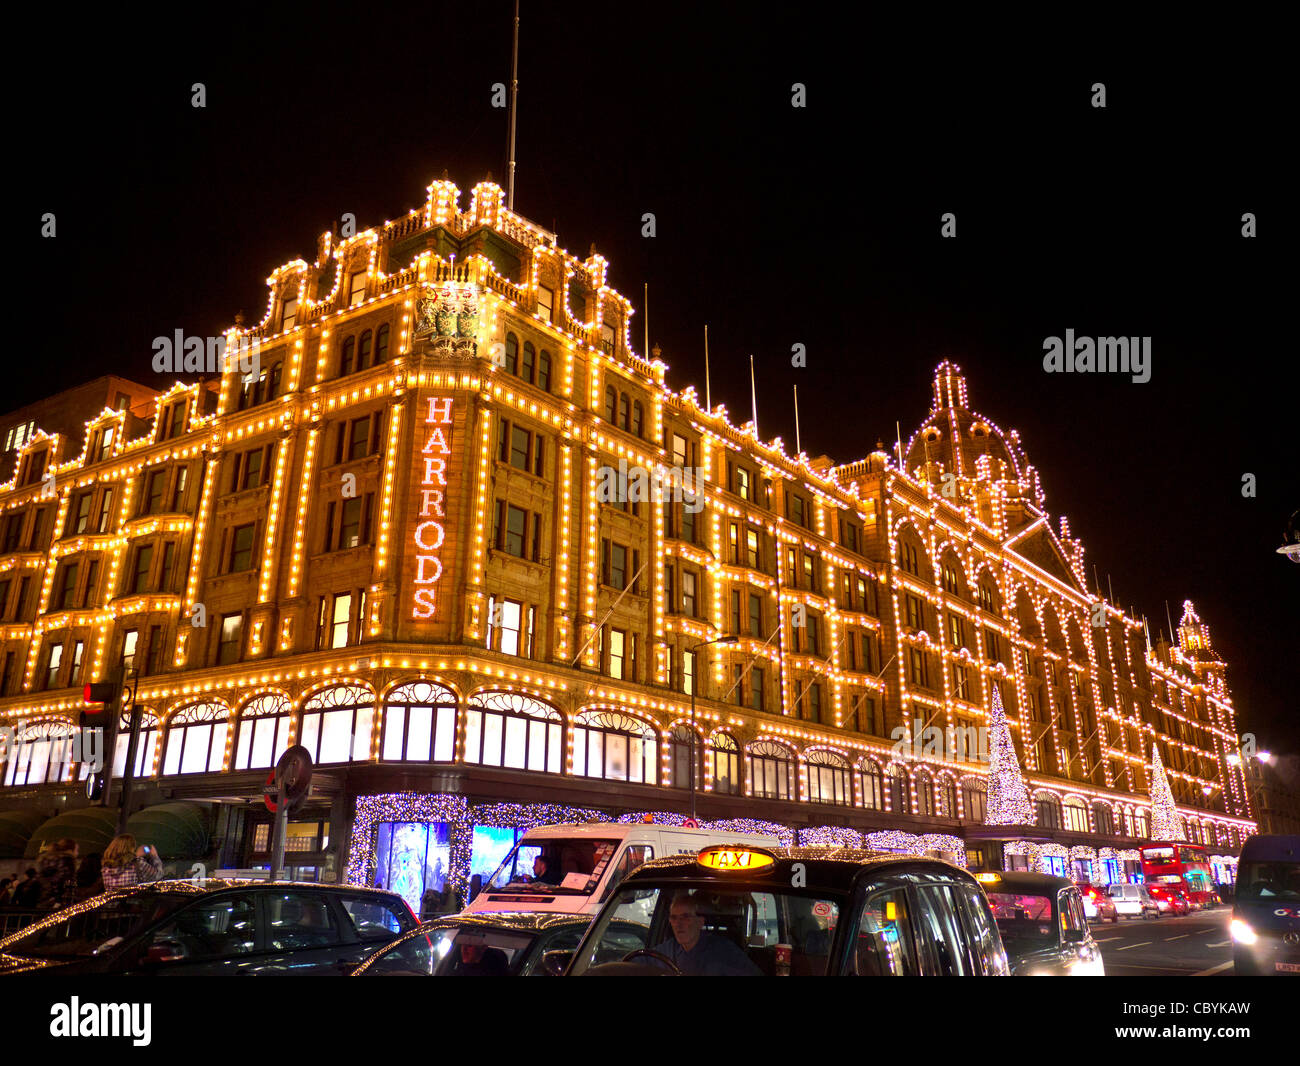 Harrods department store at dusk with Christmas lights shoppers and ...